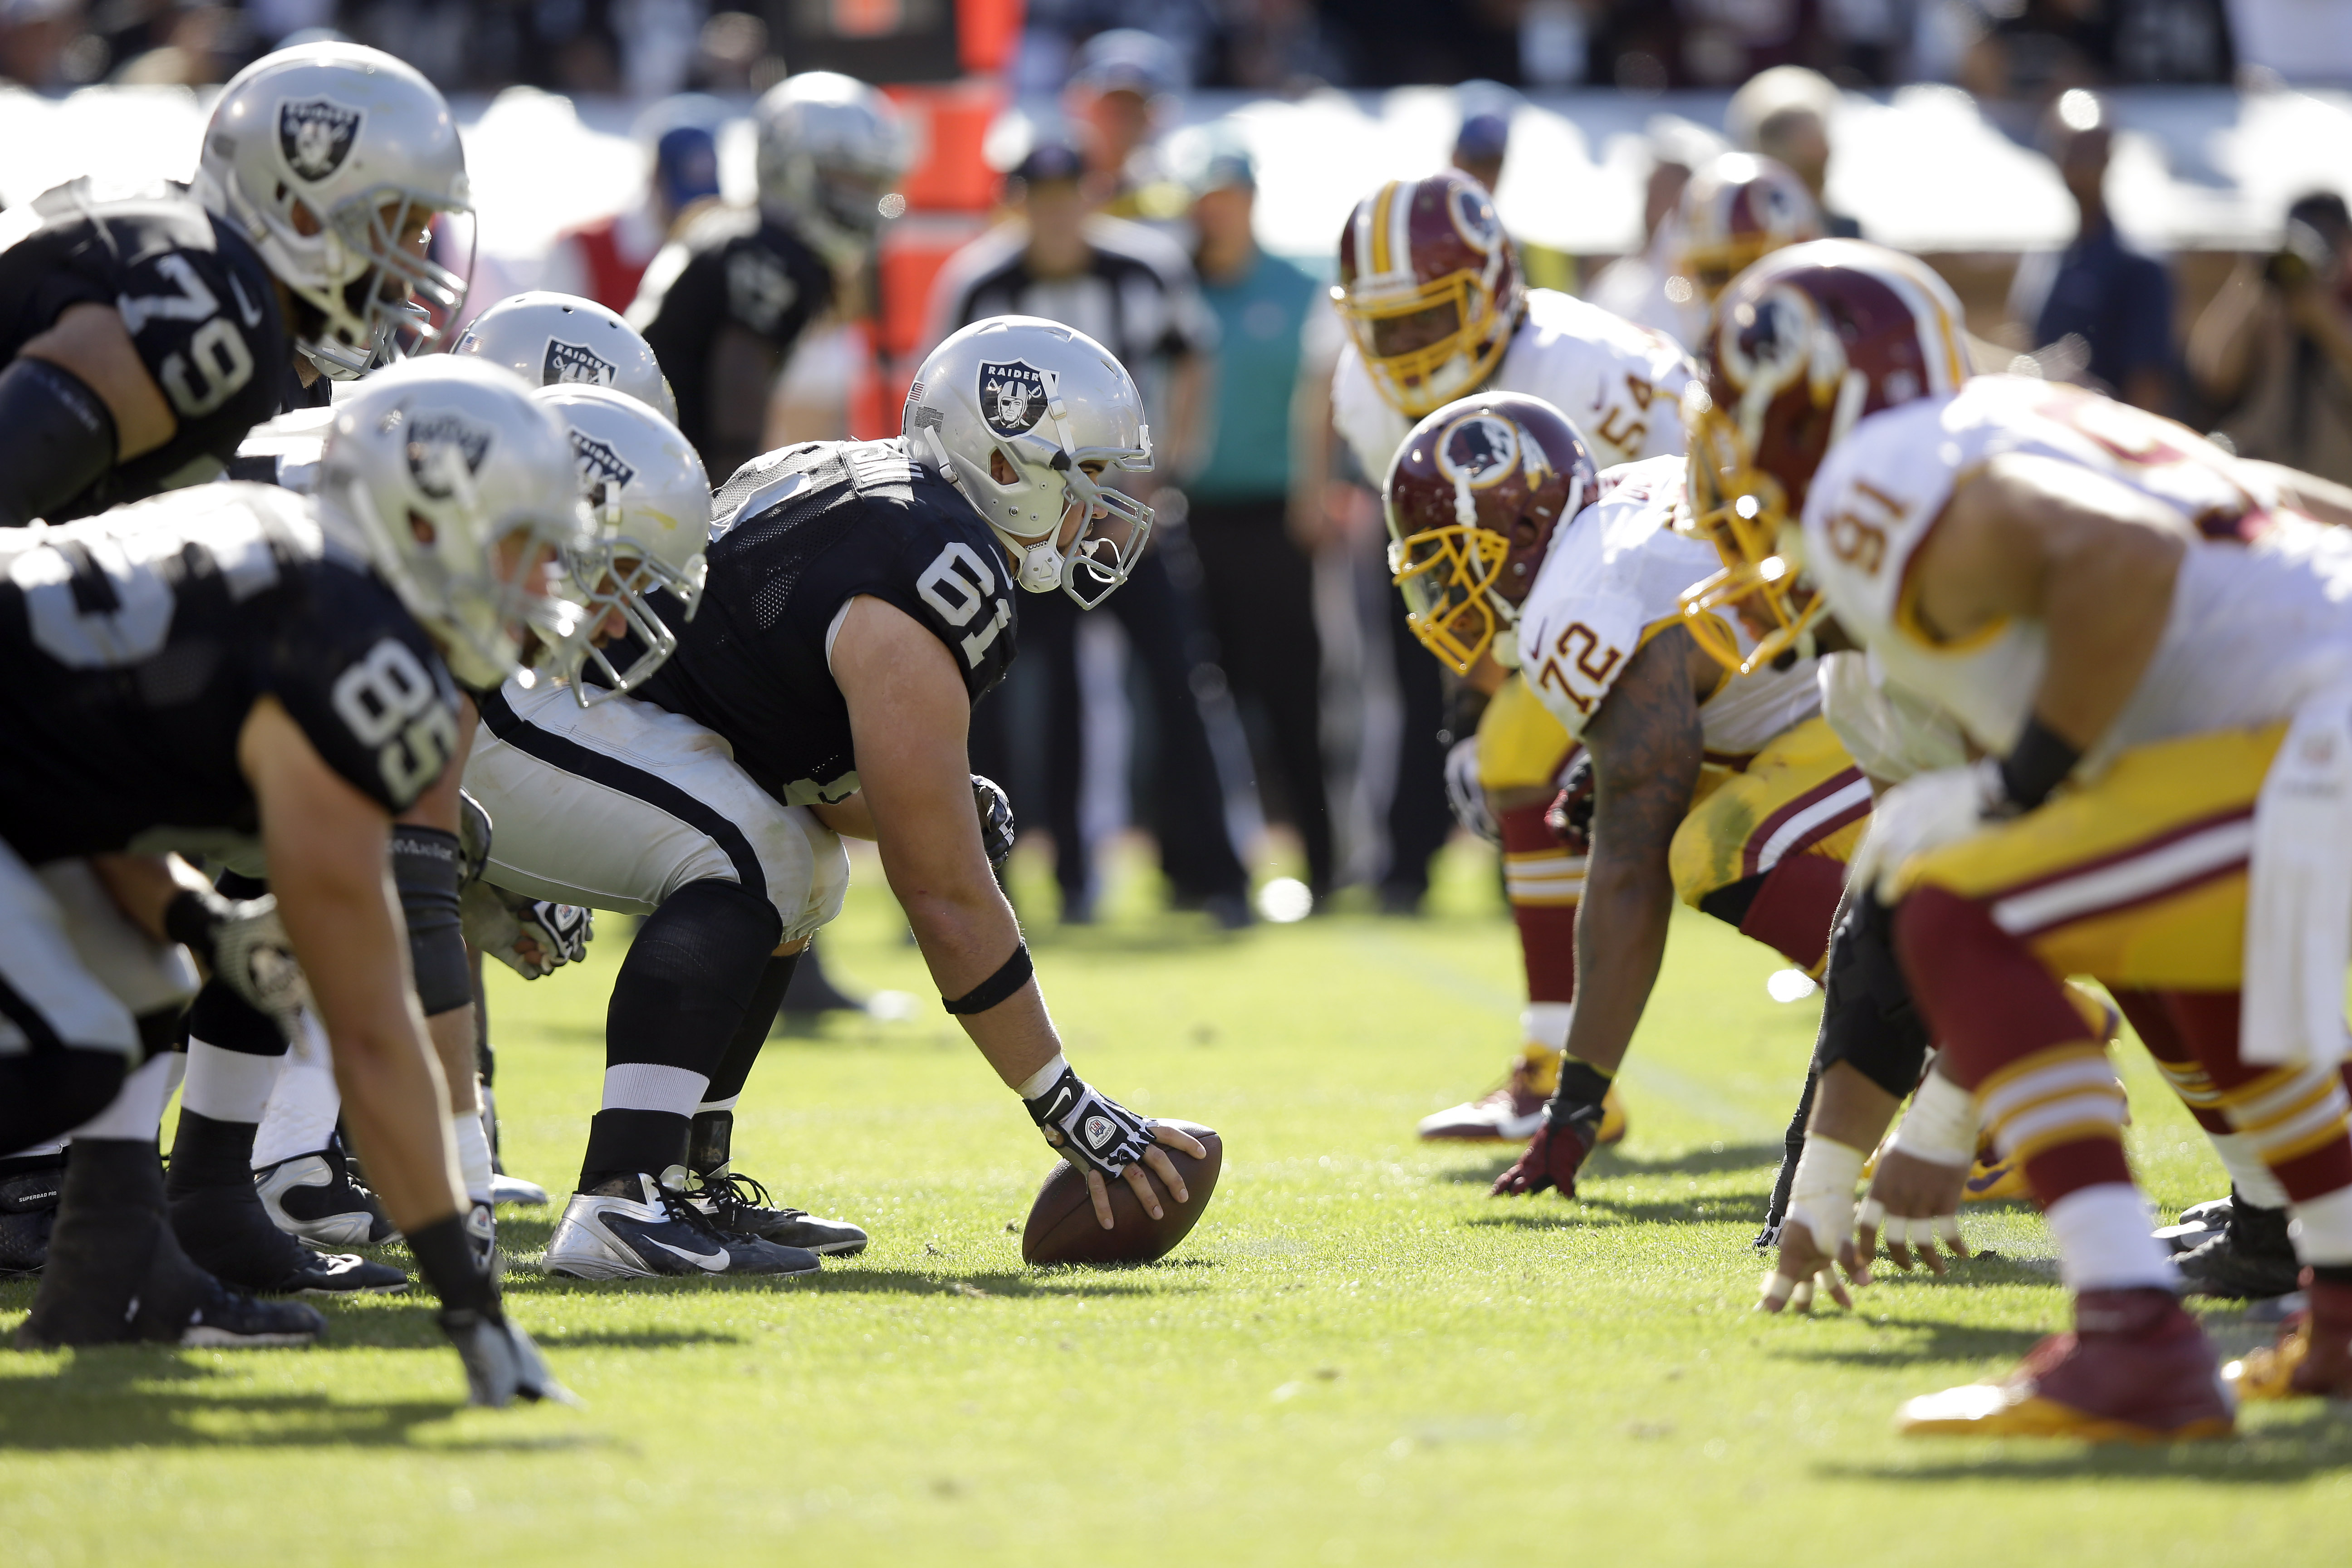 Redskins' Gruden on Raiders offense: 'Nothing they're not doing well'